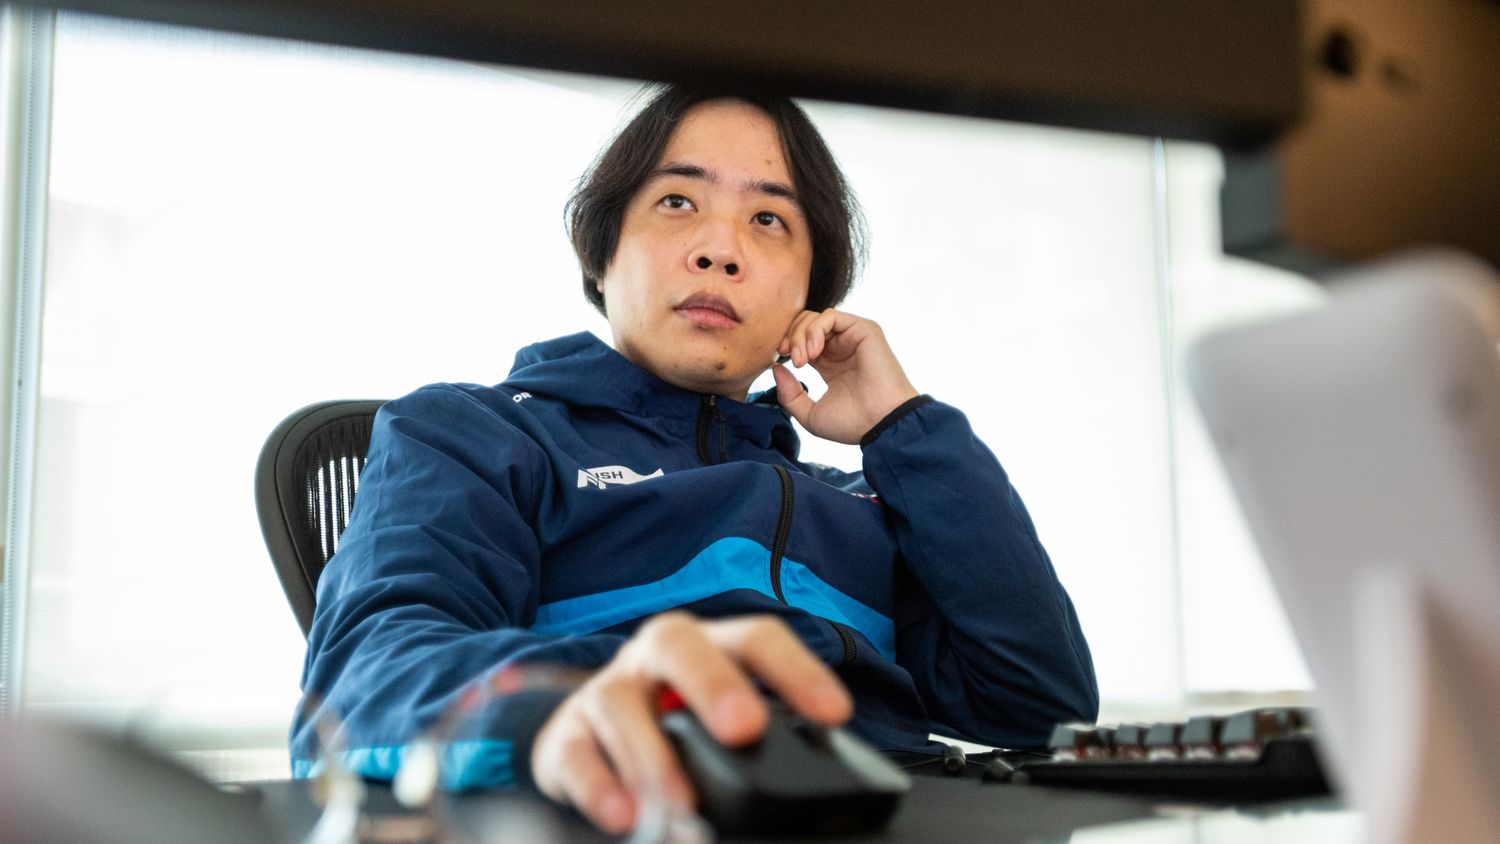 """Dallas Fuel head coach Hee-Won """"Rush"""" Yun studies game play on computer monitors during practice time at the Dallas Fuel headquarters in Dallas, on Monday, Sept. 13, 2021."""